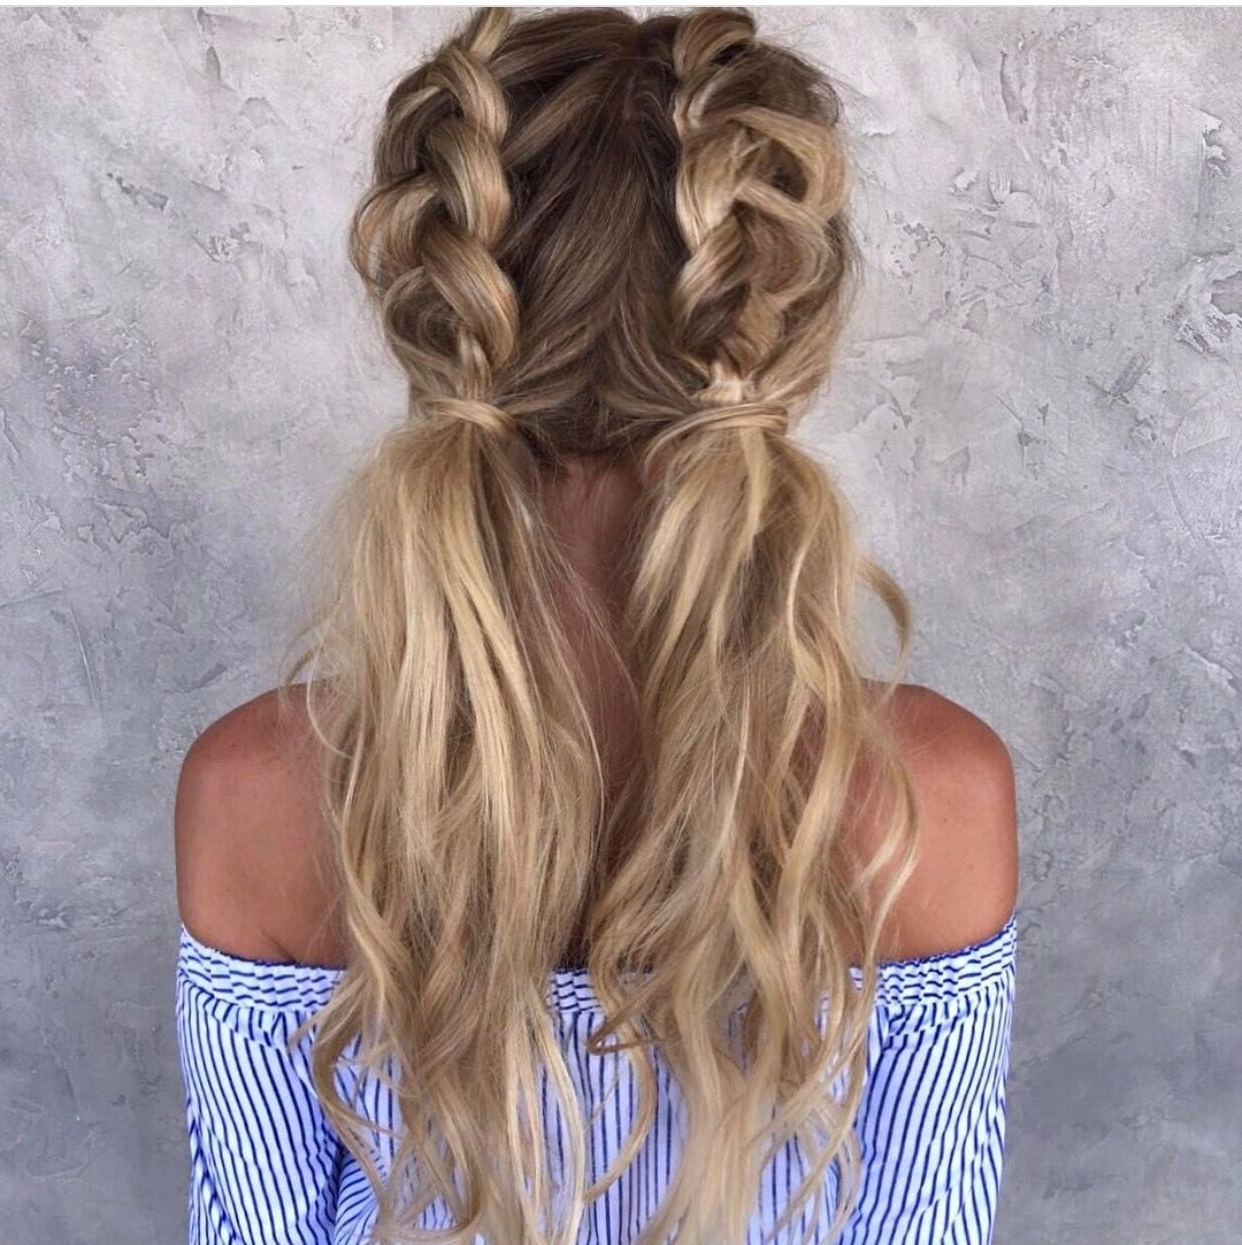 Most Current Braided Millennial Pink Pony Hairstyles For Half Dutch Braided Pigtails (View 11 of 20)